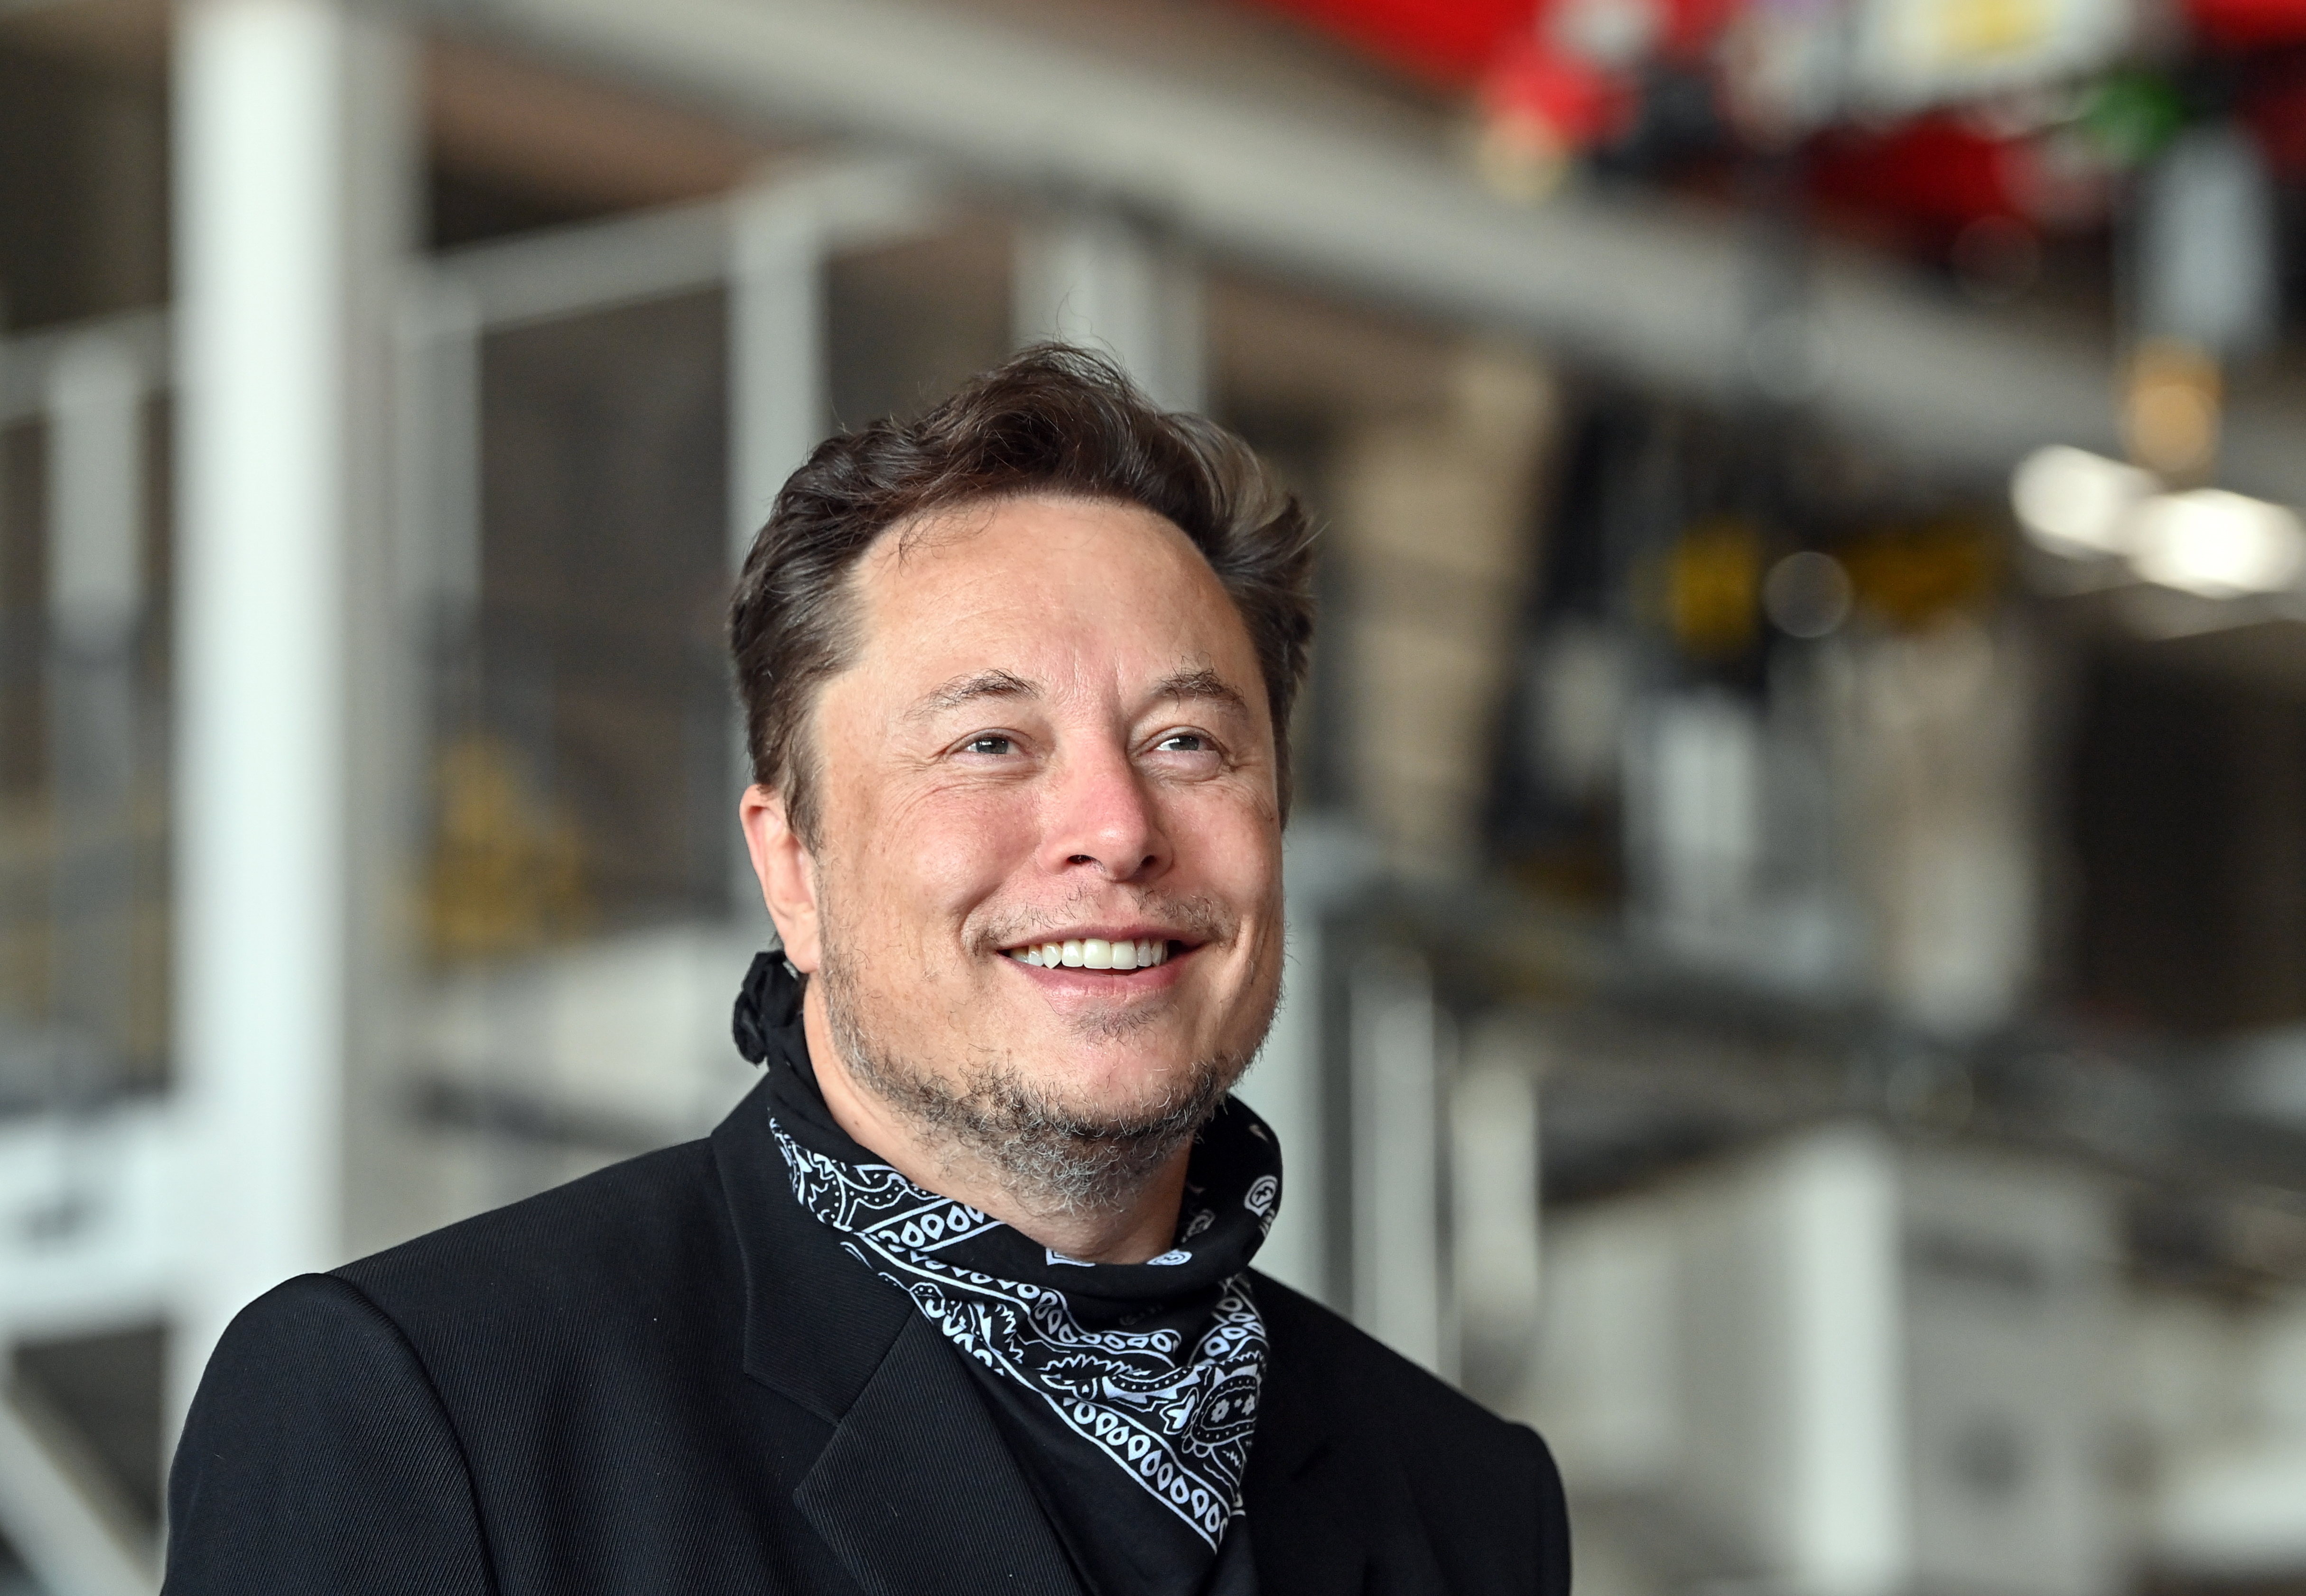 A photo of Elon Musk smiling.